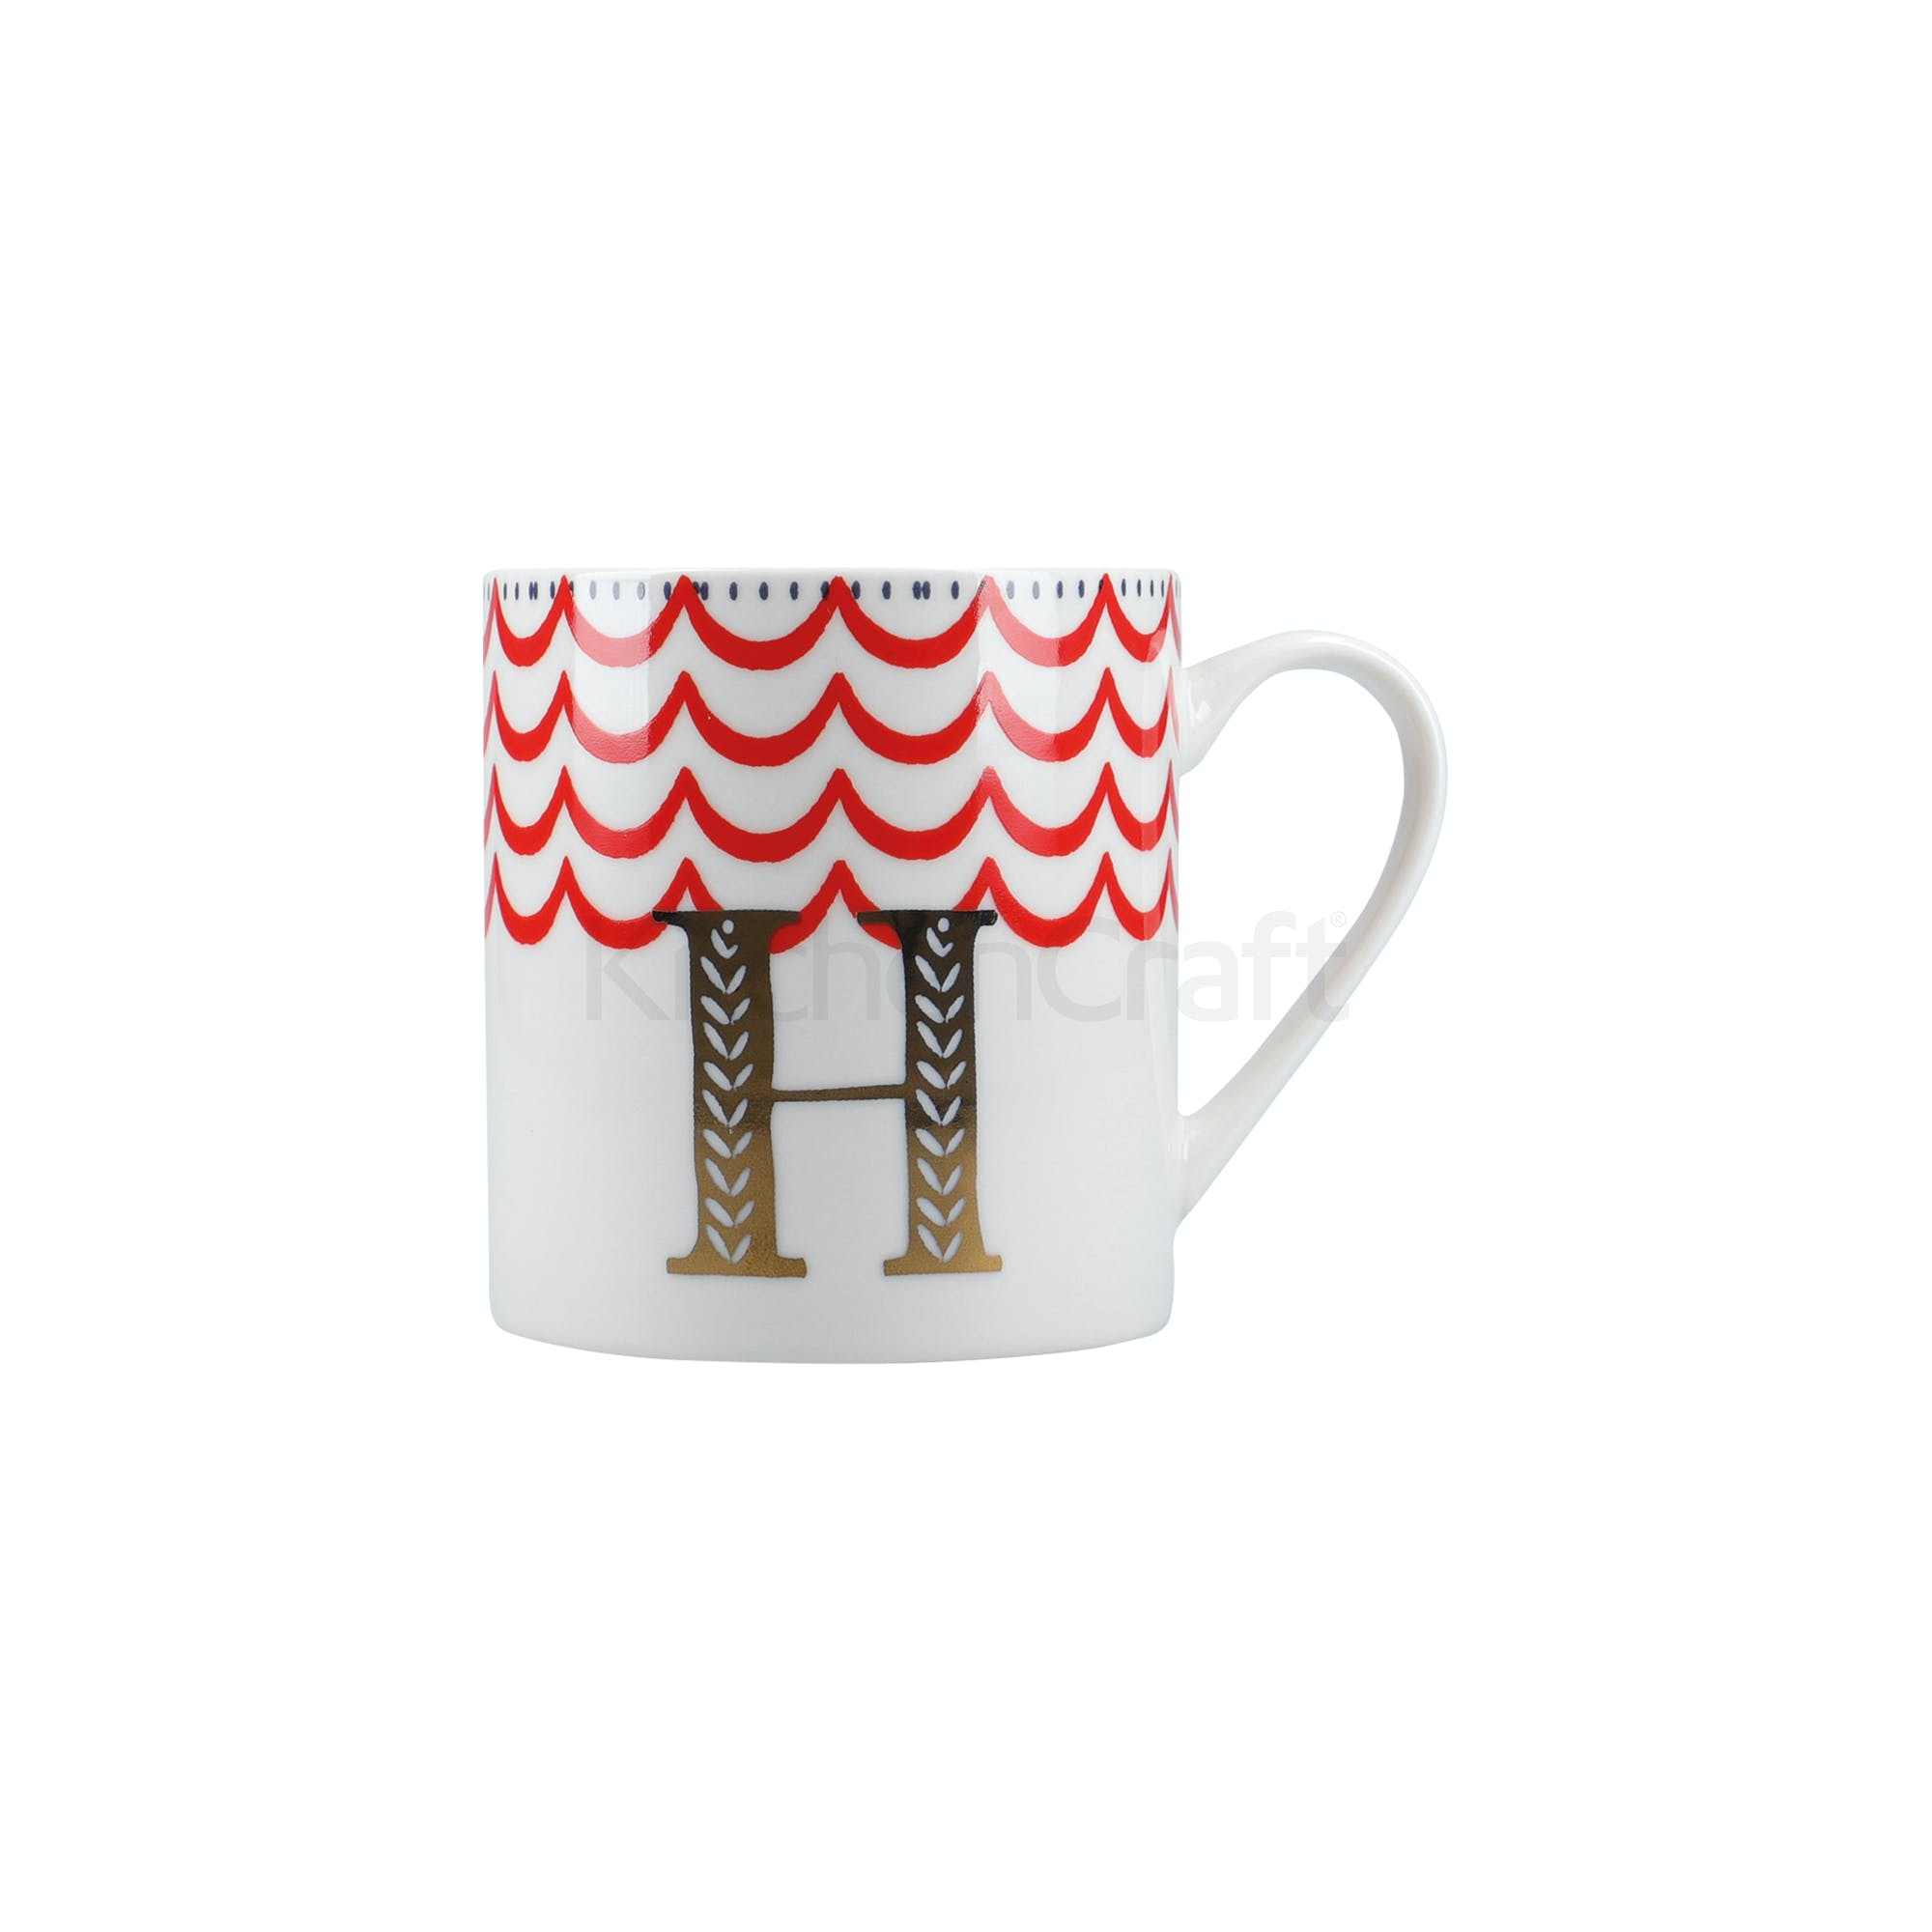 Marque H Et H creative tops alphabet can mug h | mugs | creative tops